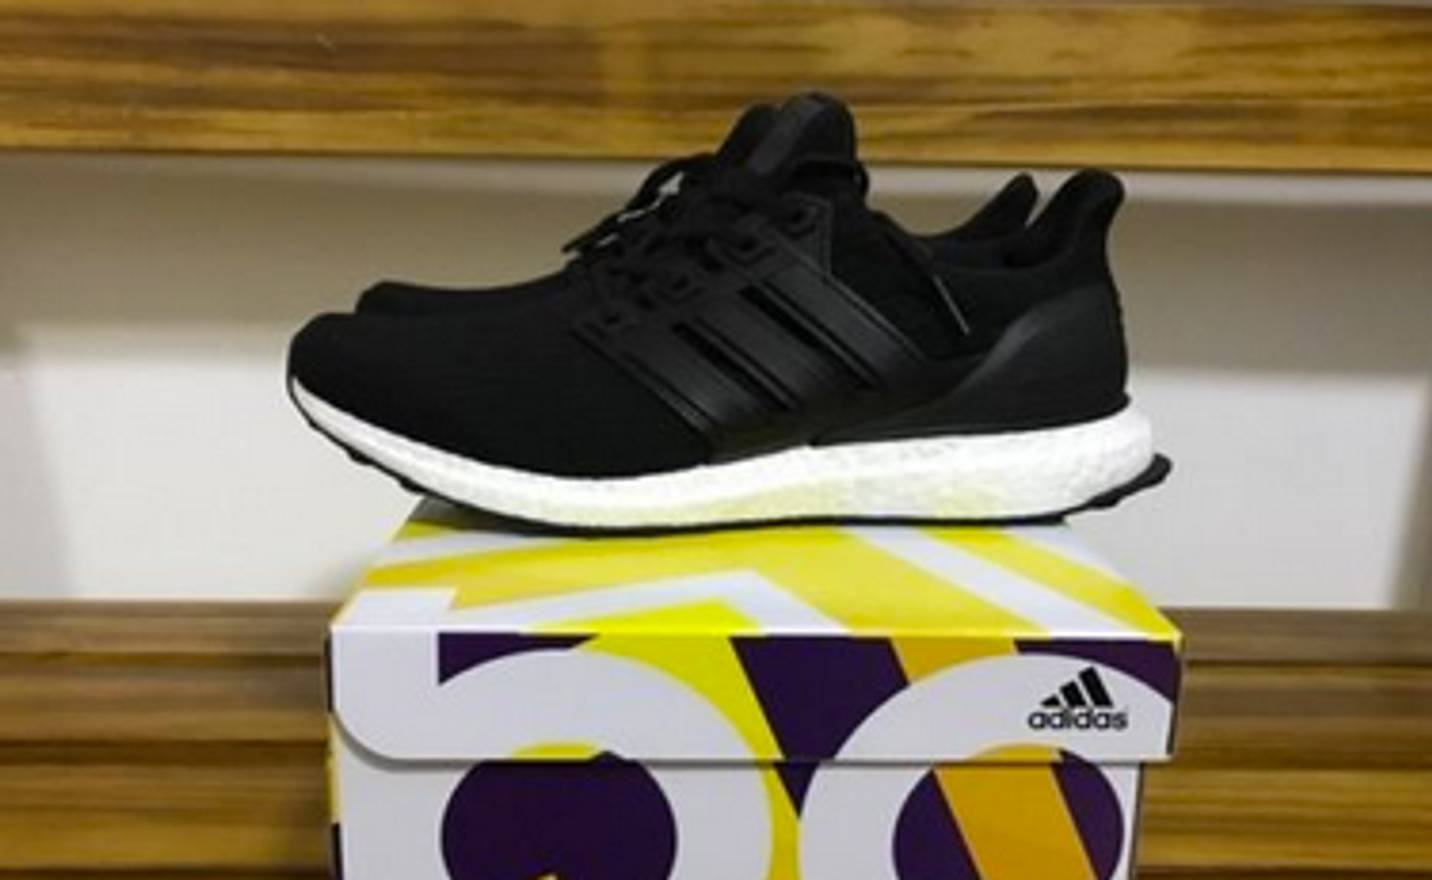 170eaa9970d60 ... best adidas adidas ultra boost ltd 3.0 core black leather cage ba8924  size 11 yeezy 350